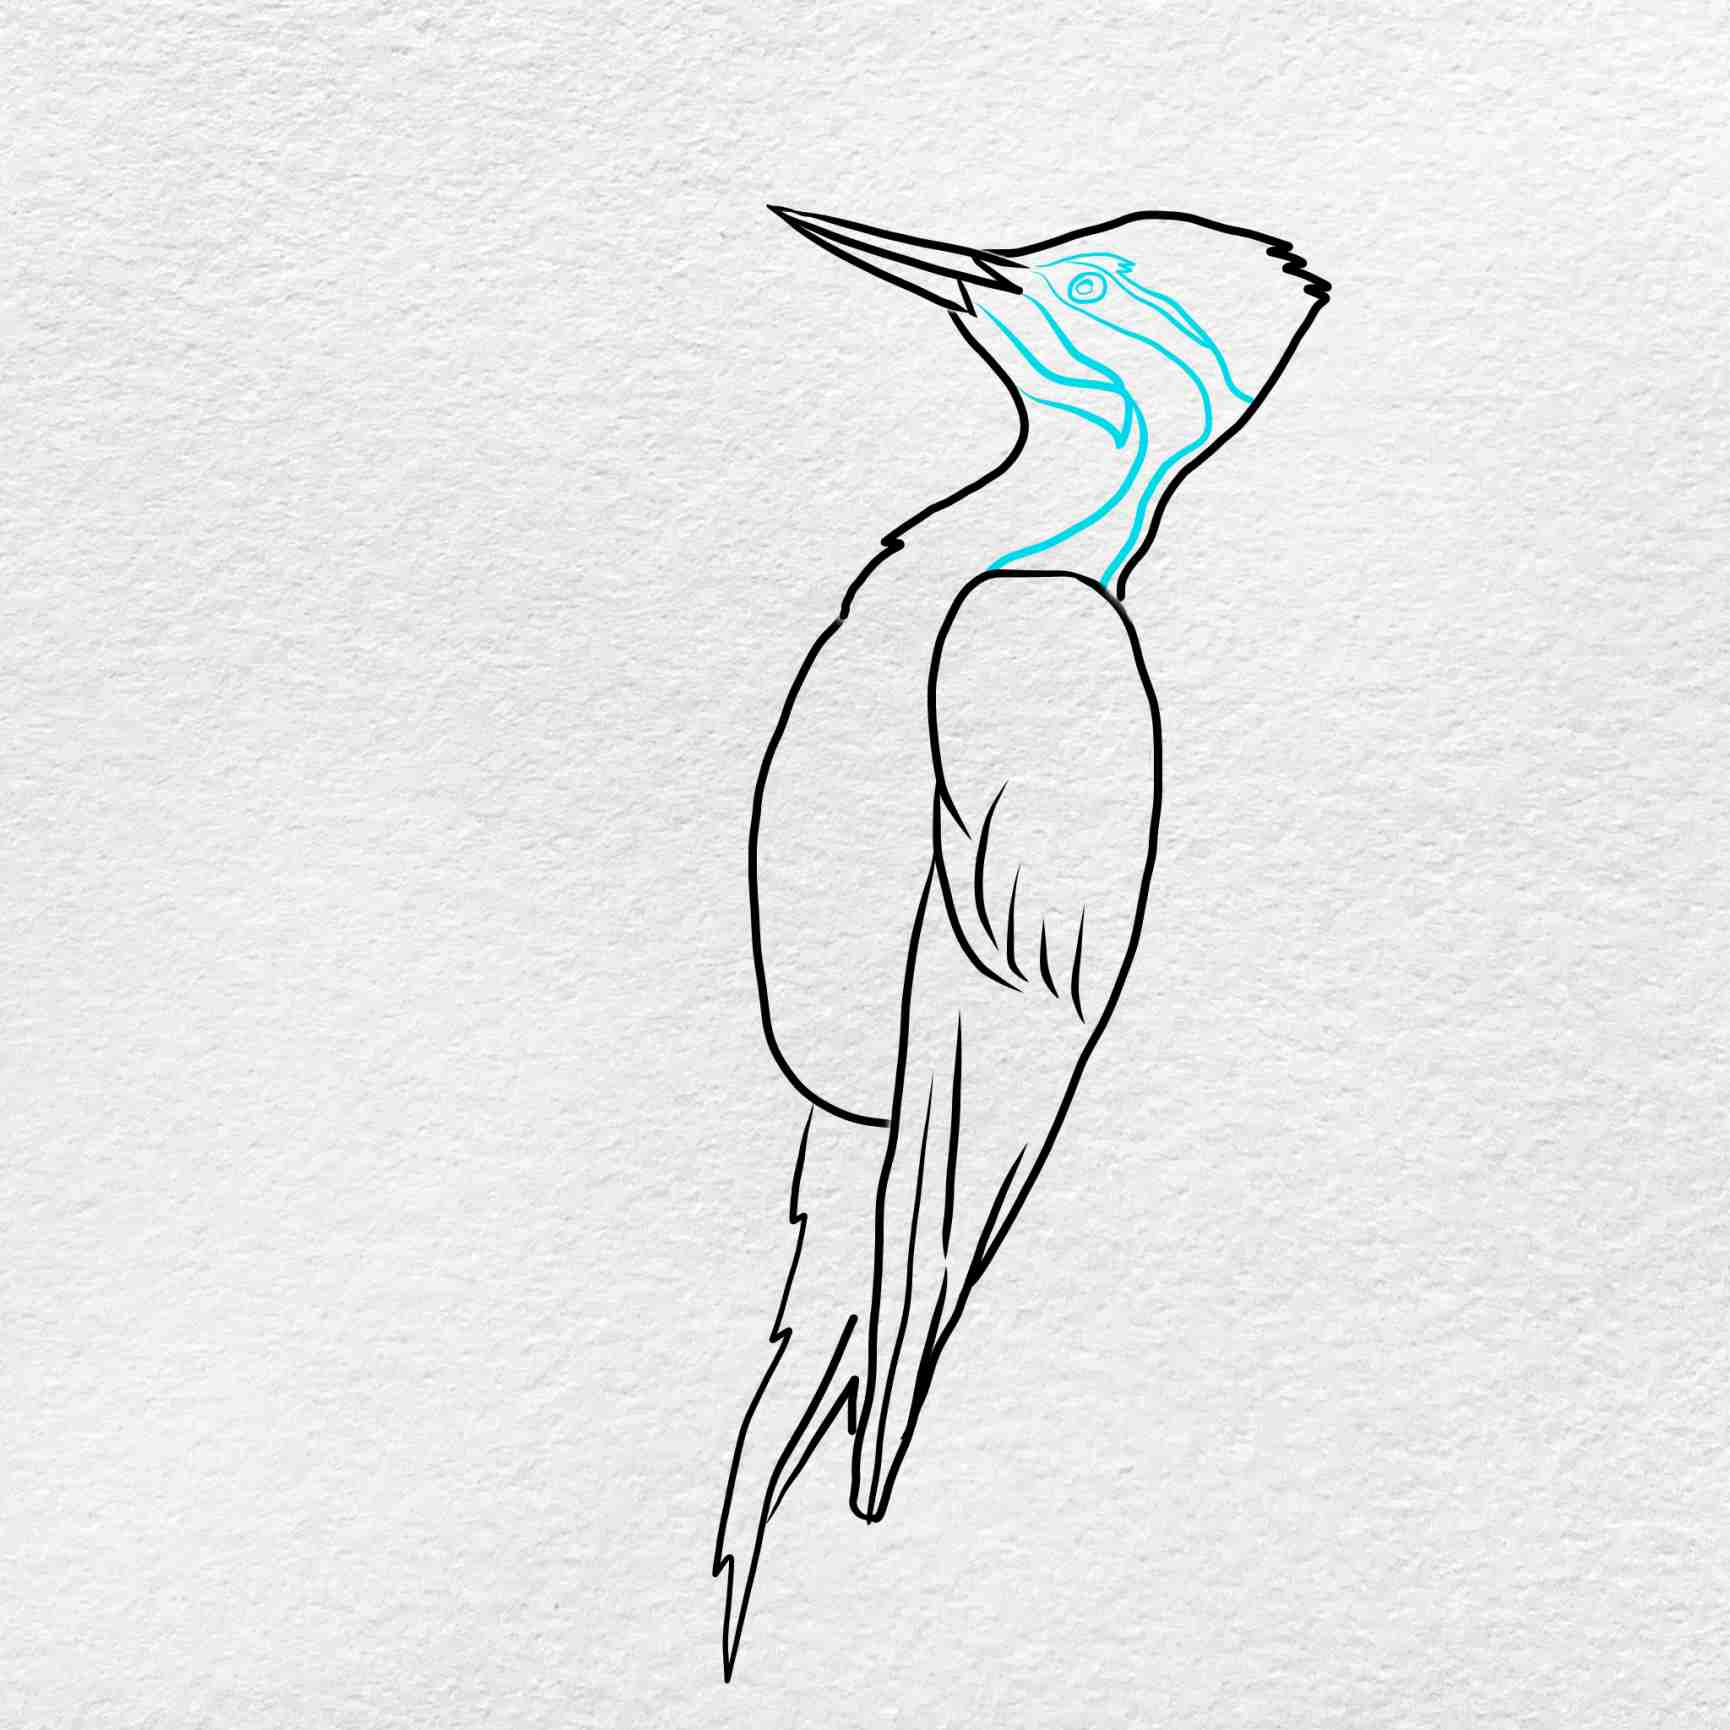 How To Draw A Woodpecker: Step 6